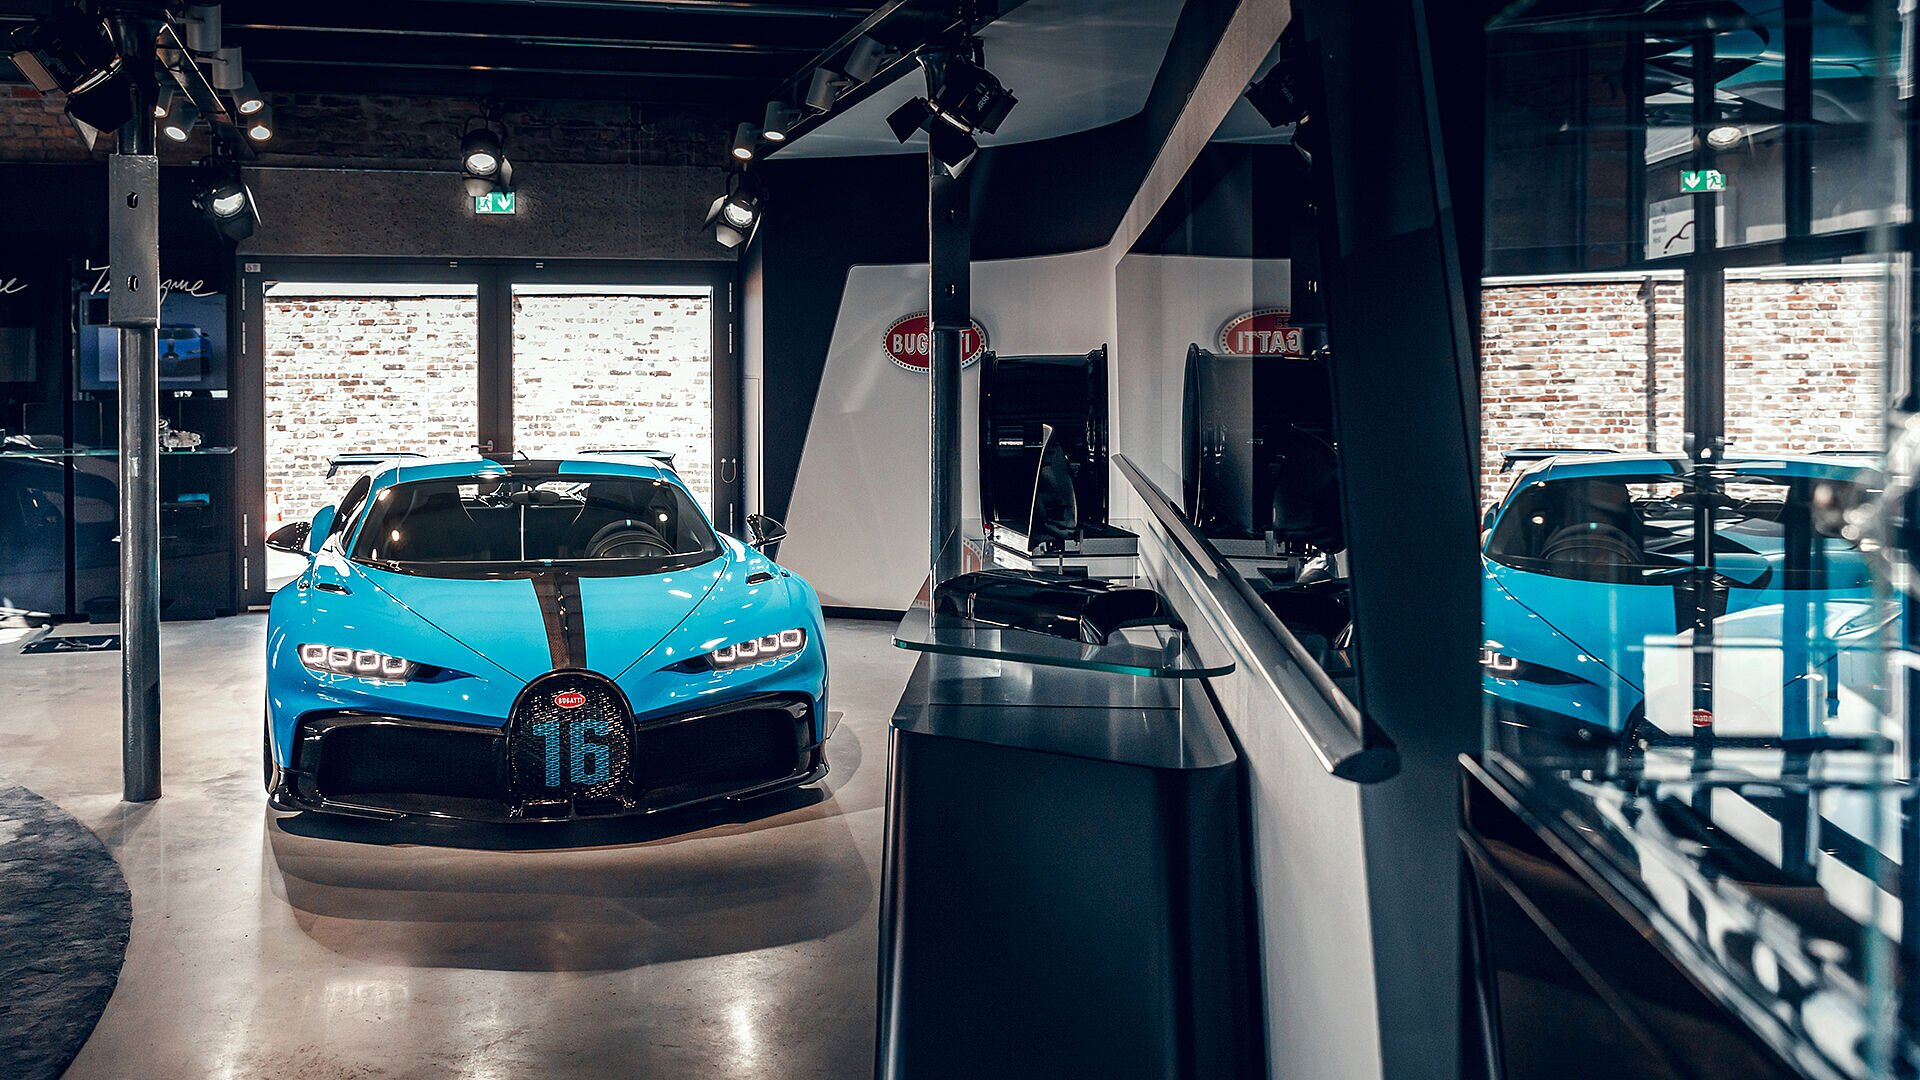 The Chiron Pur Sport in the Frankfurt showroom.